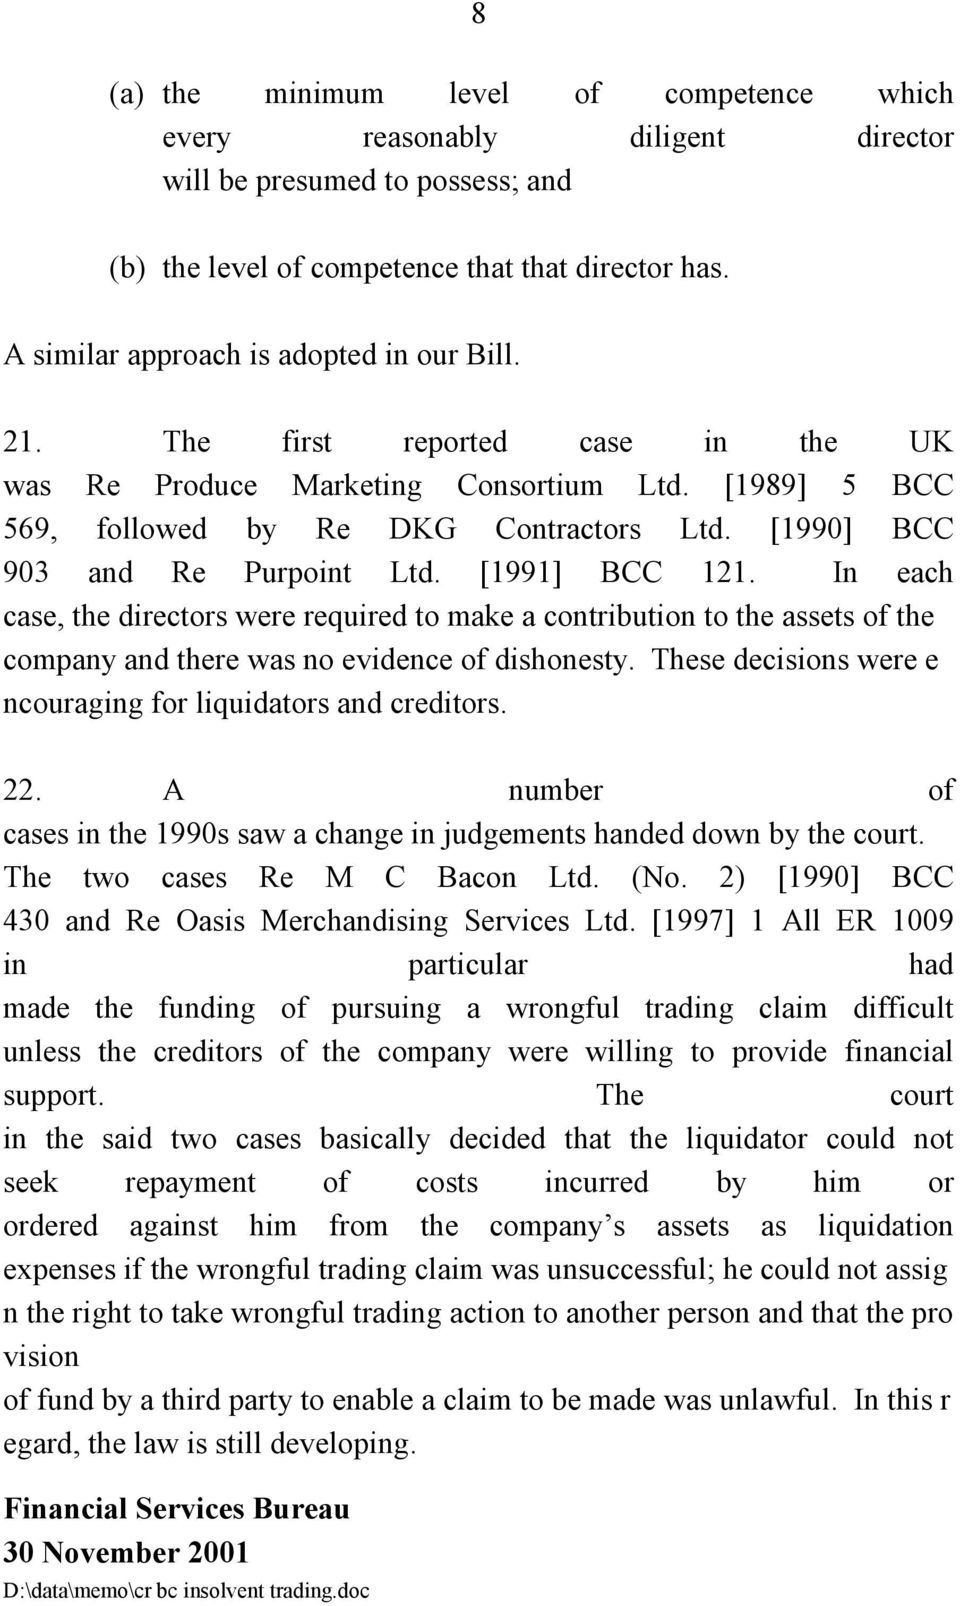 [1990] BCC 903 and Re Purpoint Ltd. [1991] BCC 121. In each case, the directors were required to make a contribution to the assets of the company and there was no evidence of dishonesty.